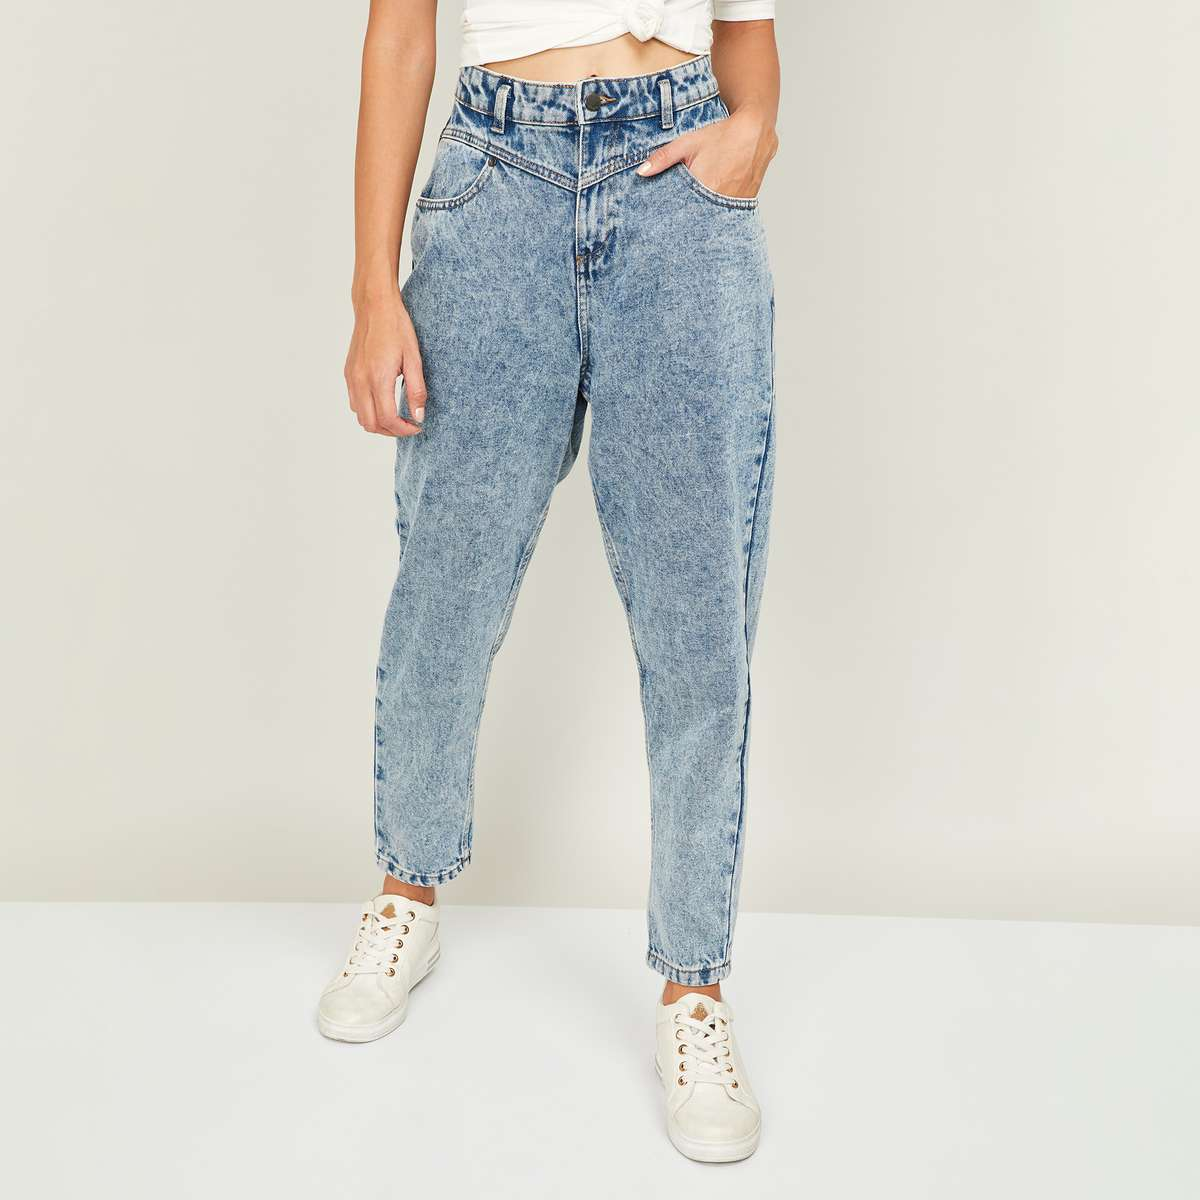 1.GINGER Women Stonewashed Relaxed Fit Jeans